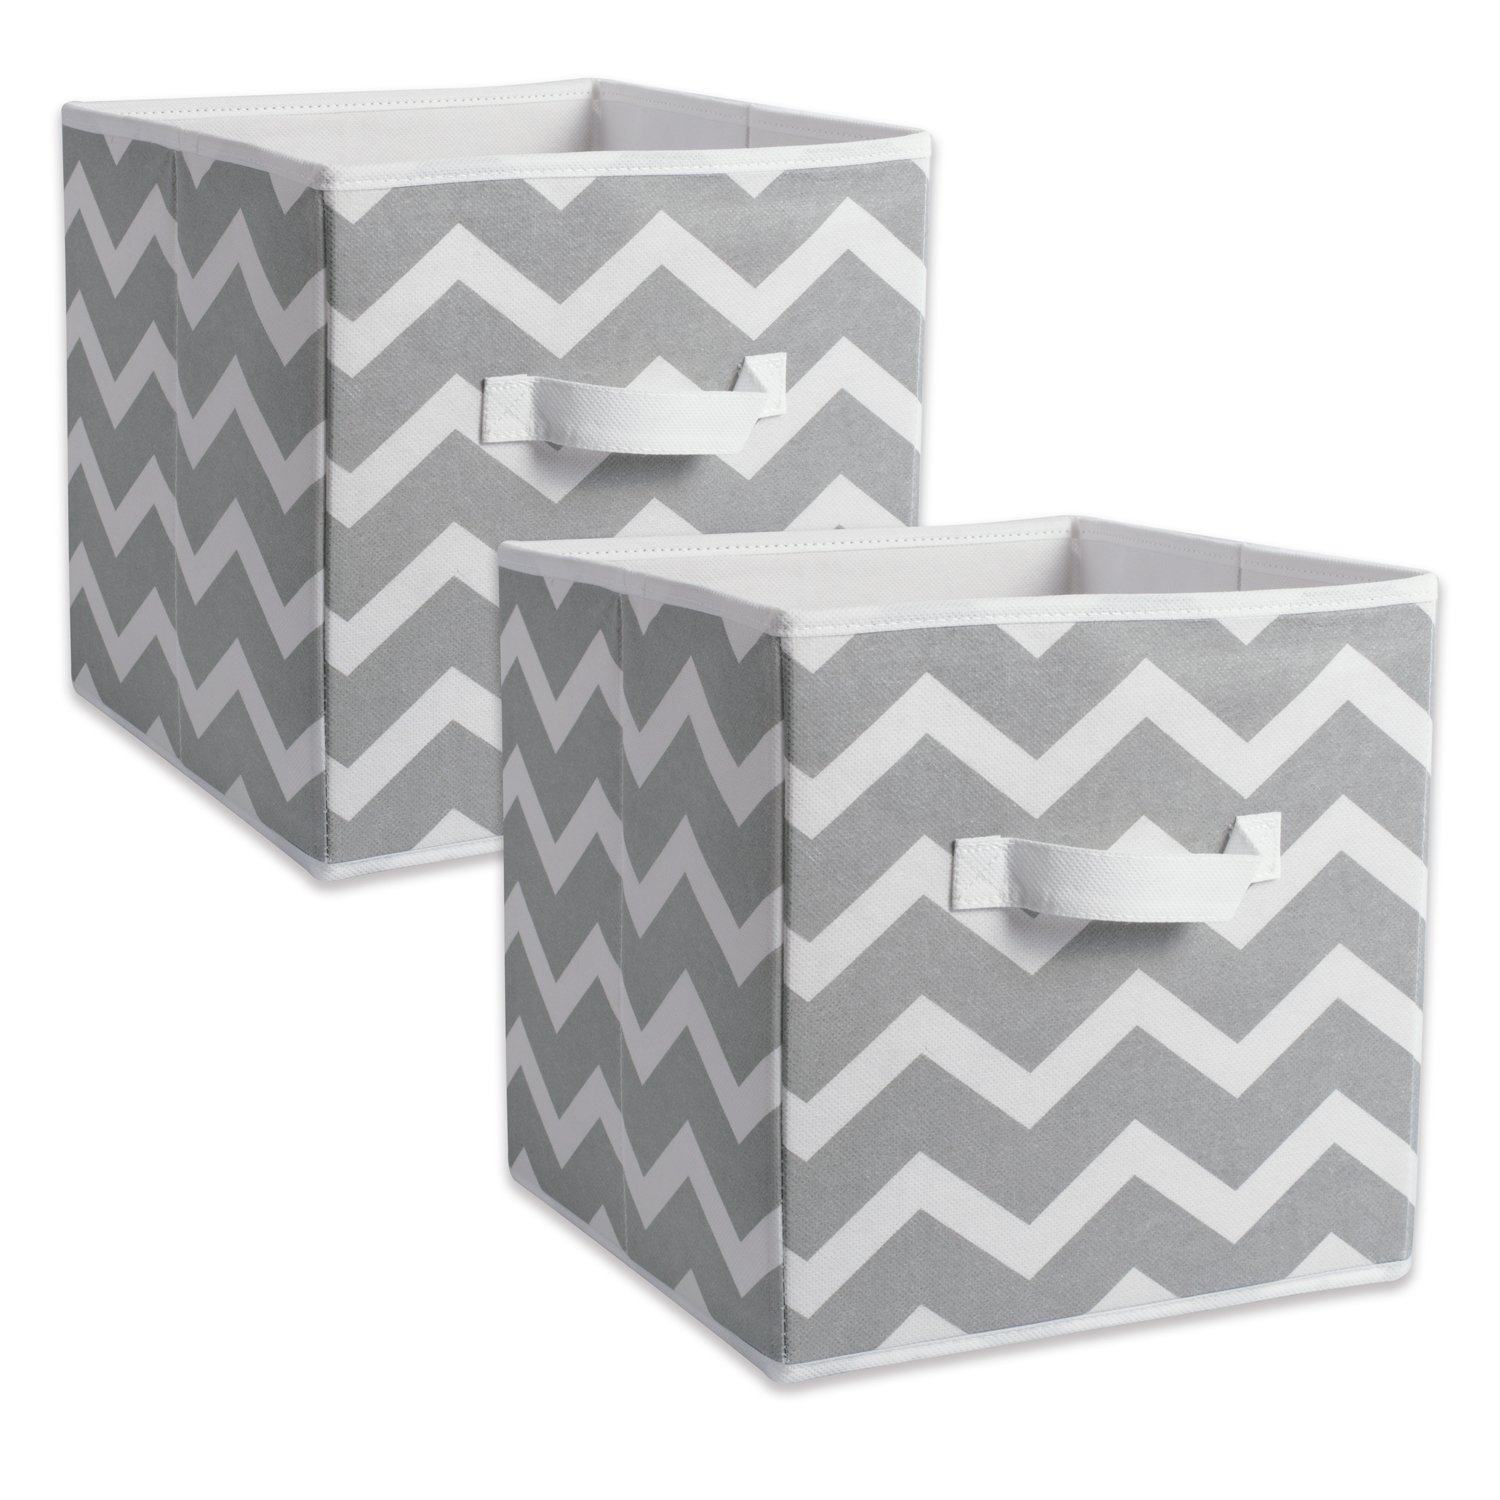 The Best Storage Container Sets (& Baskets) For Your Bathroom: Reviews & Buying Guide 18